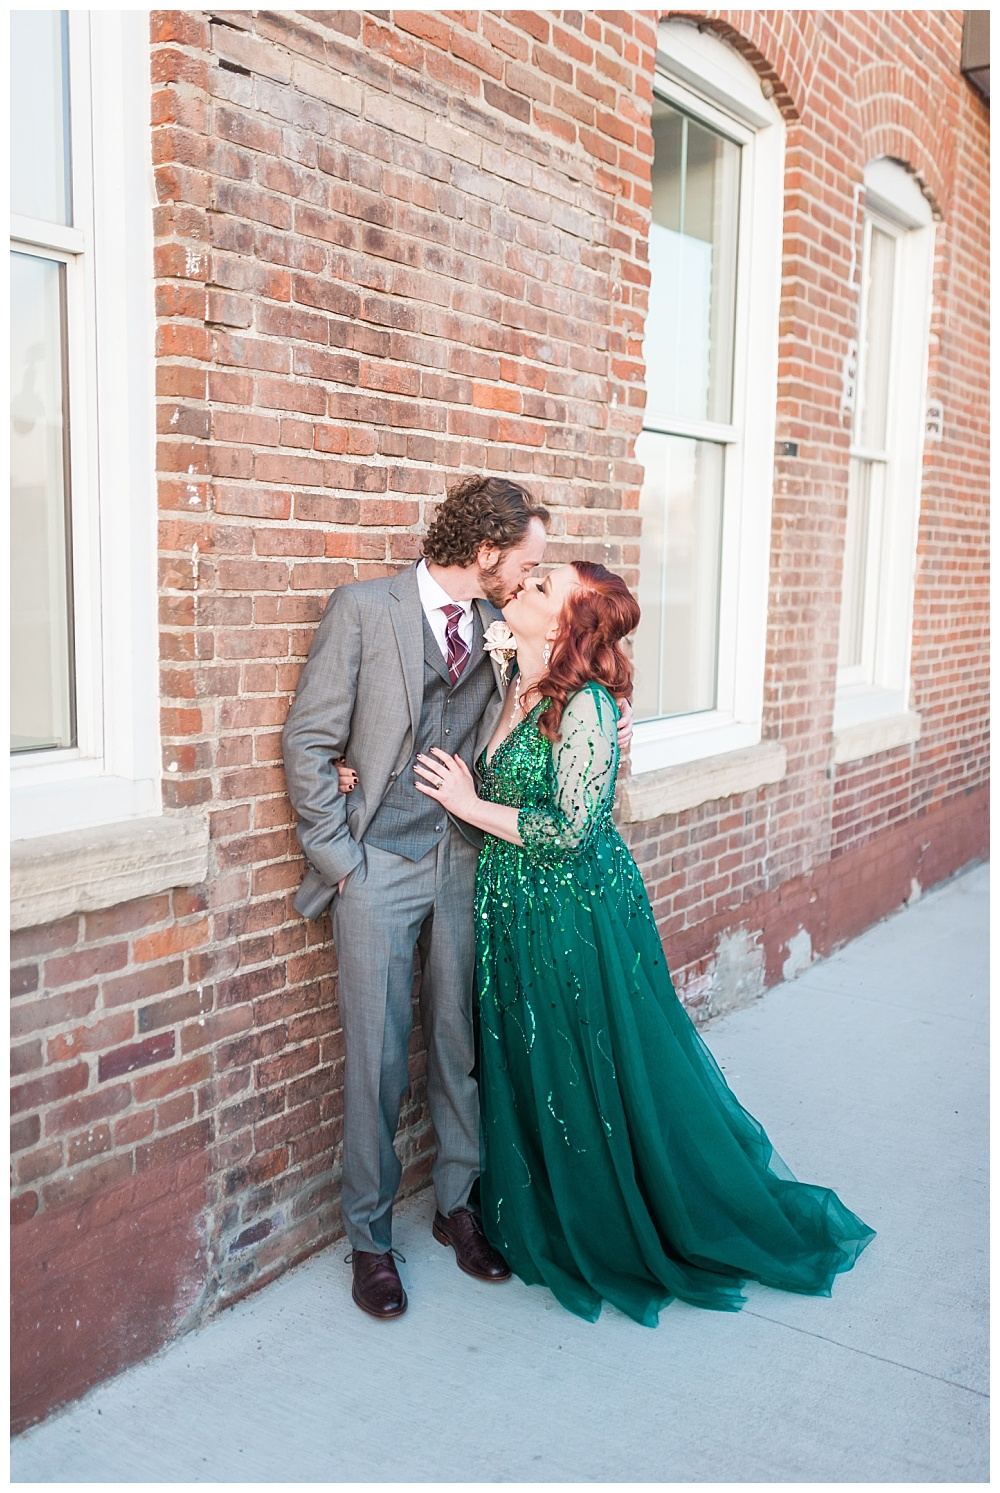 Stephanie Marie Photography Eastbank Venue and Lounge Cedar Rapids Iowa City Wedding Photographer Pete Leslie Akers 84